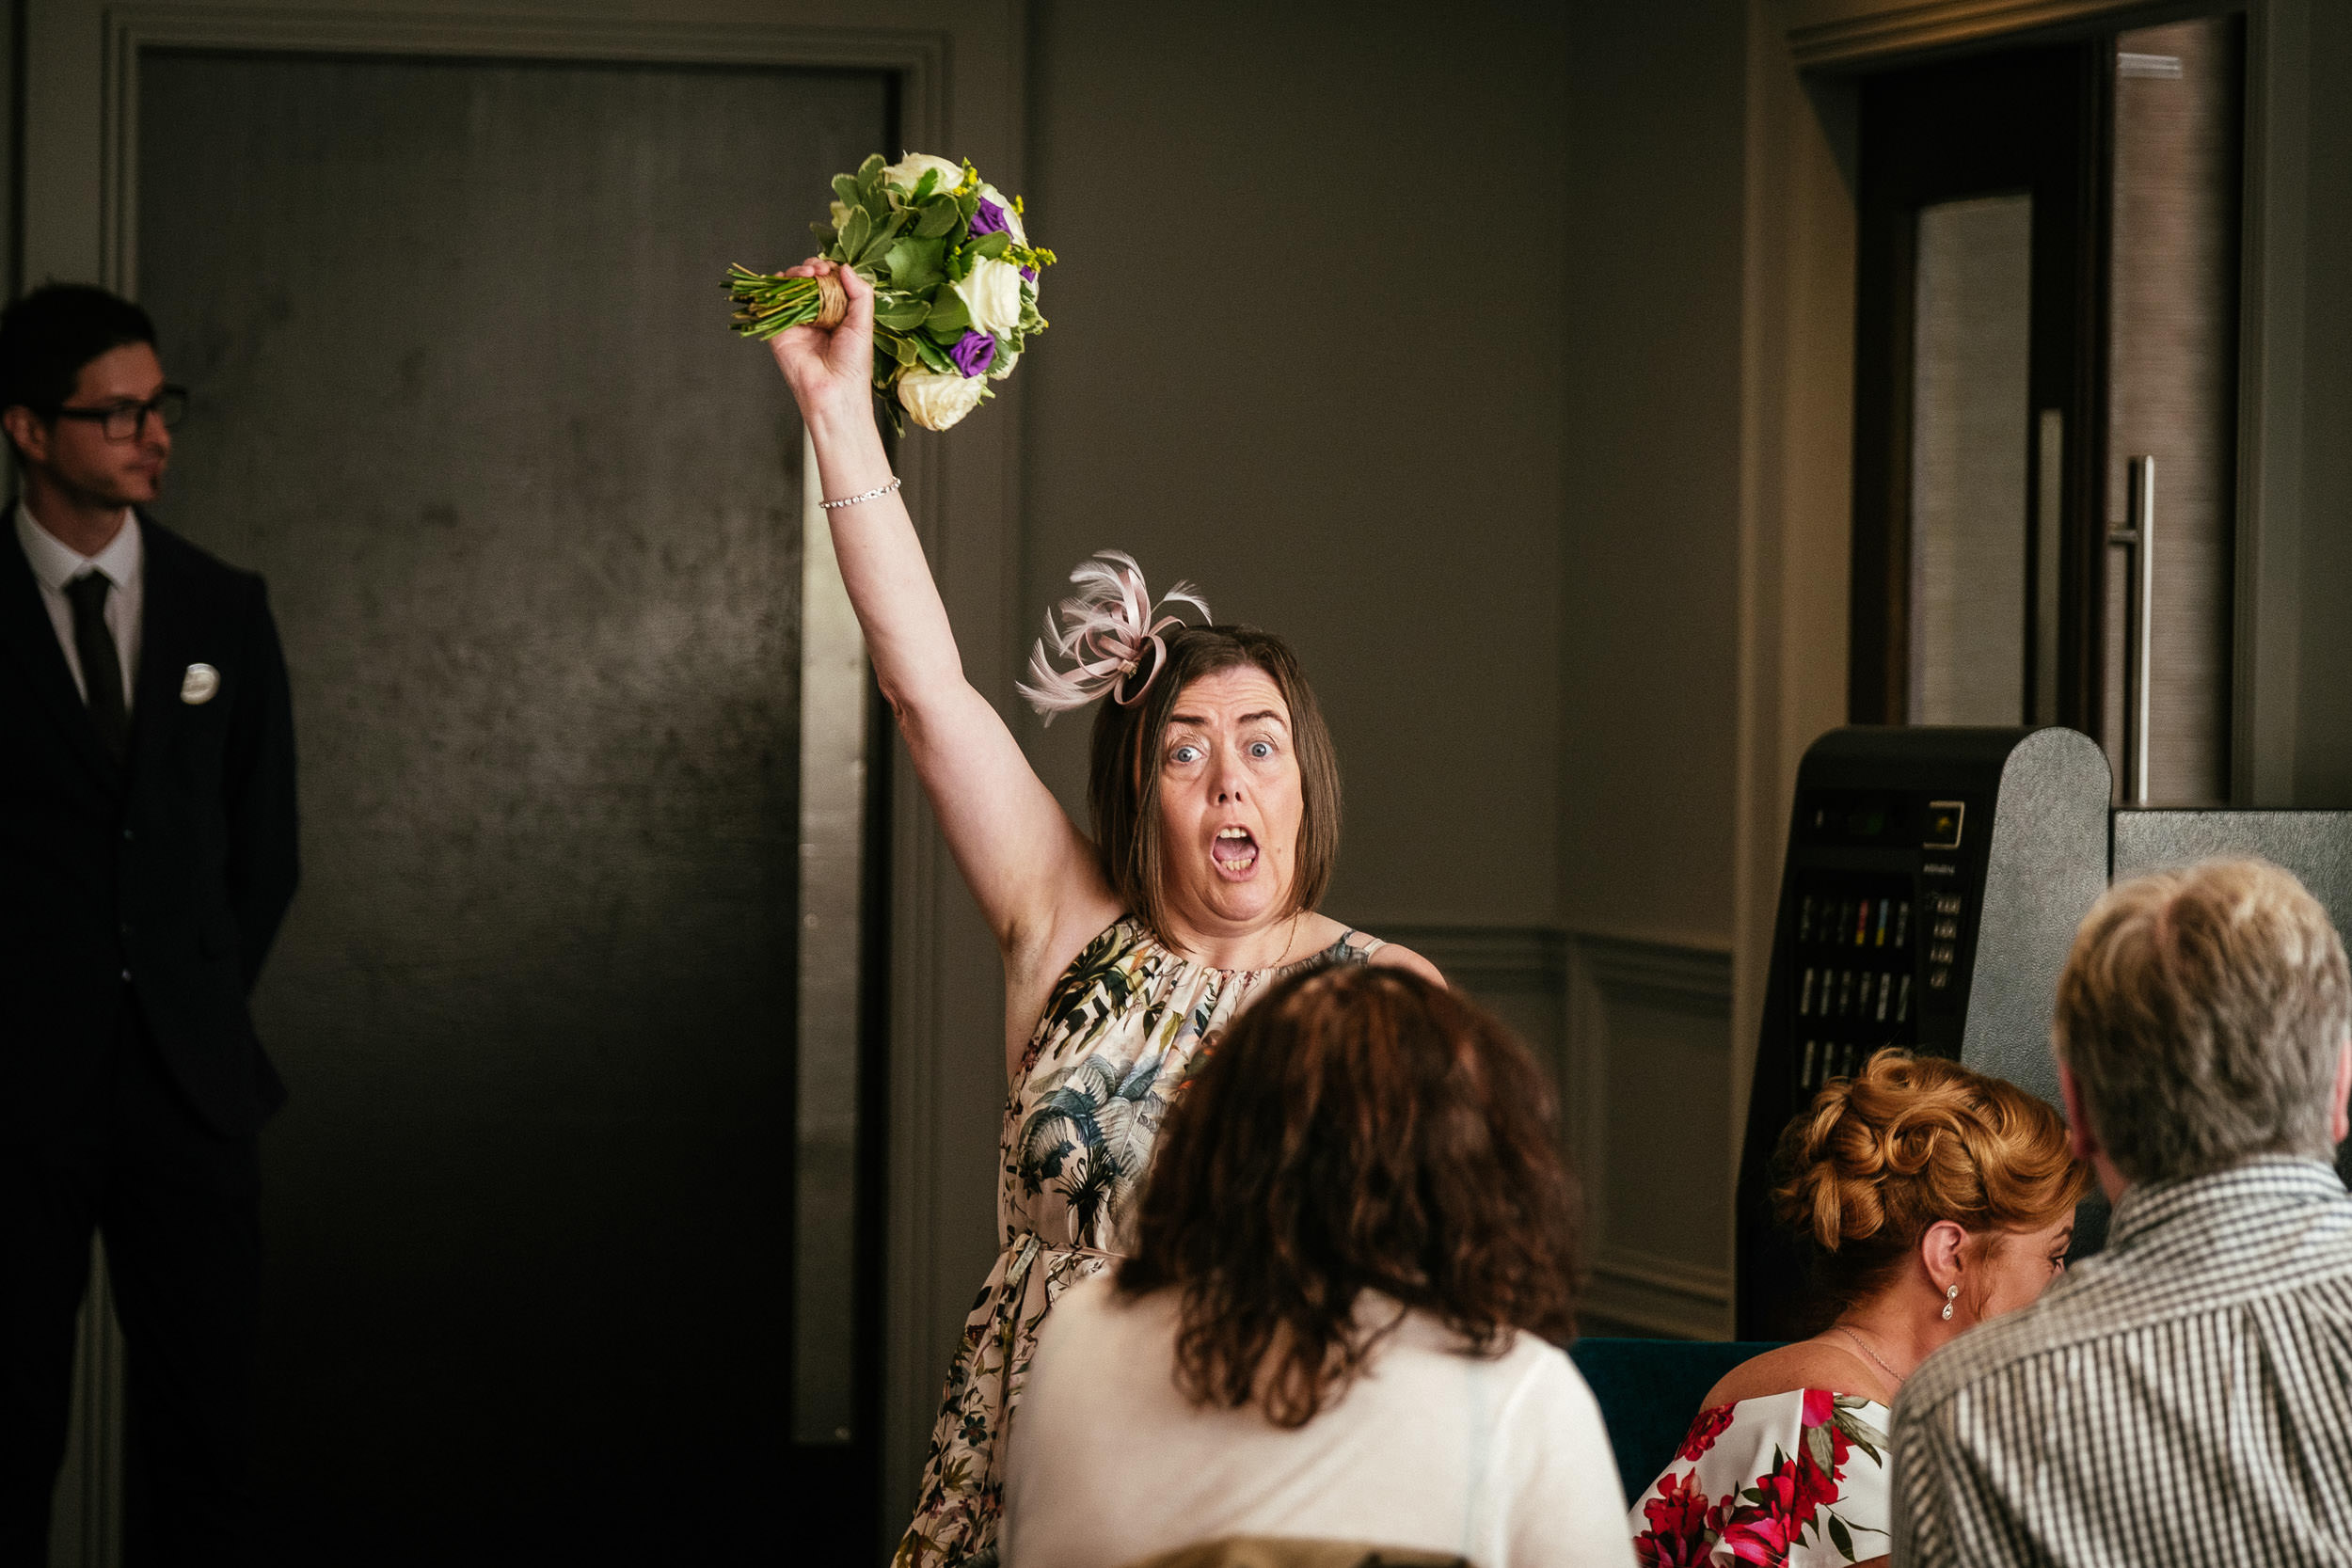 older femaile wedding guest cheering